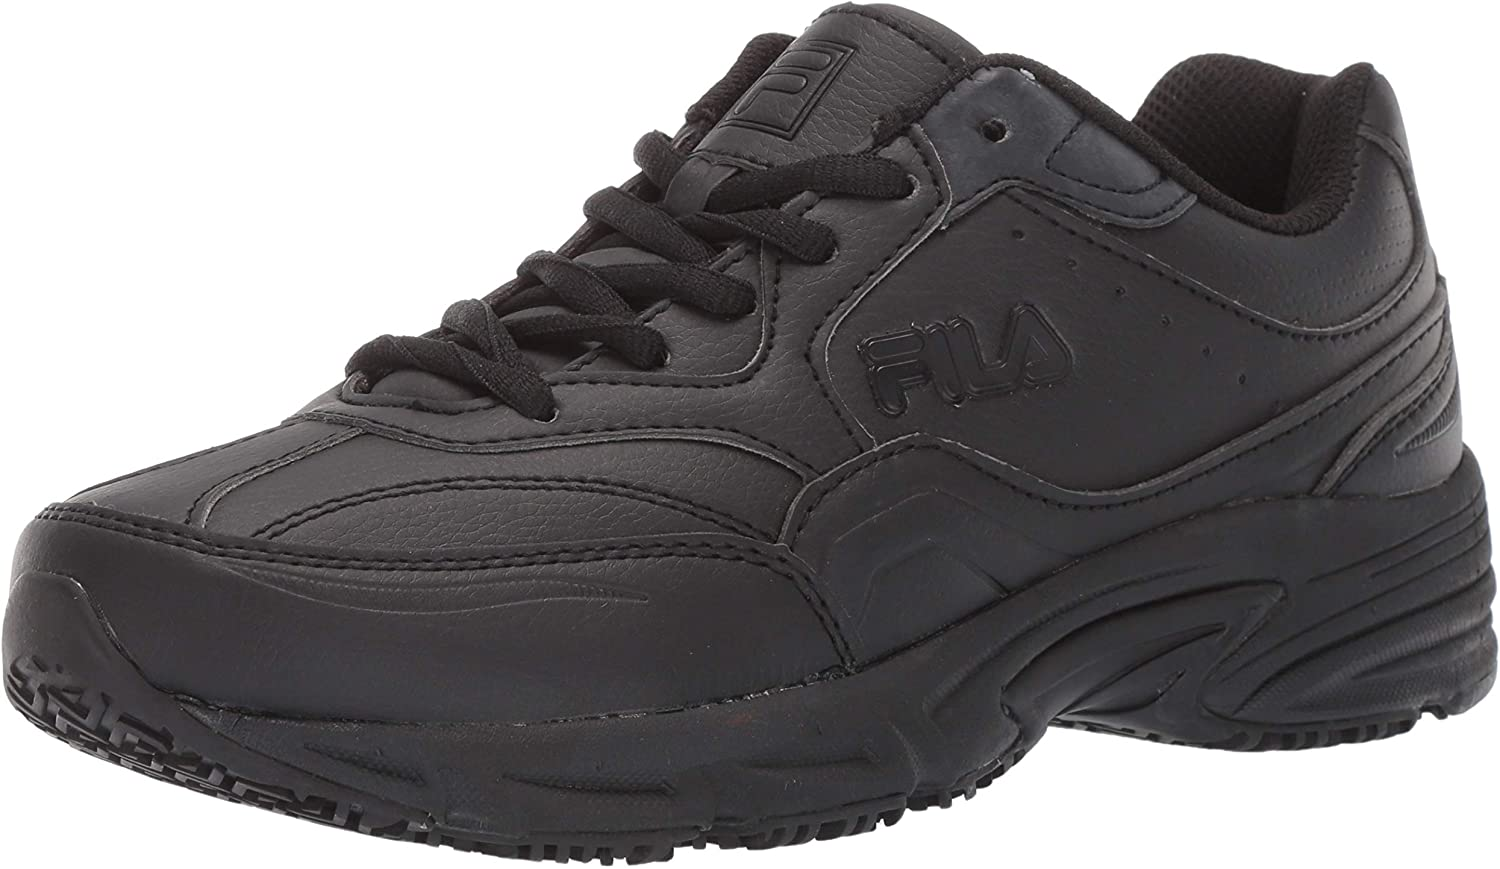 Fila Mens On The Job Slip Resistant Work shoes Hiking shoes